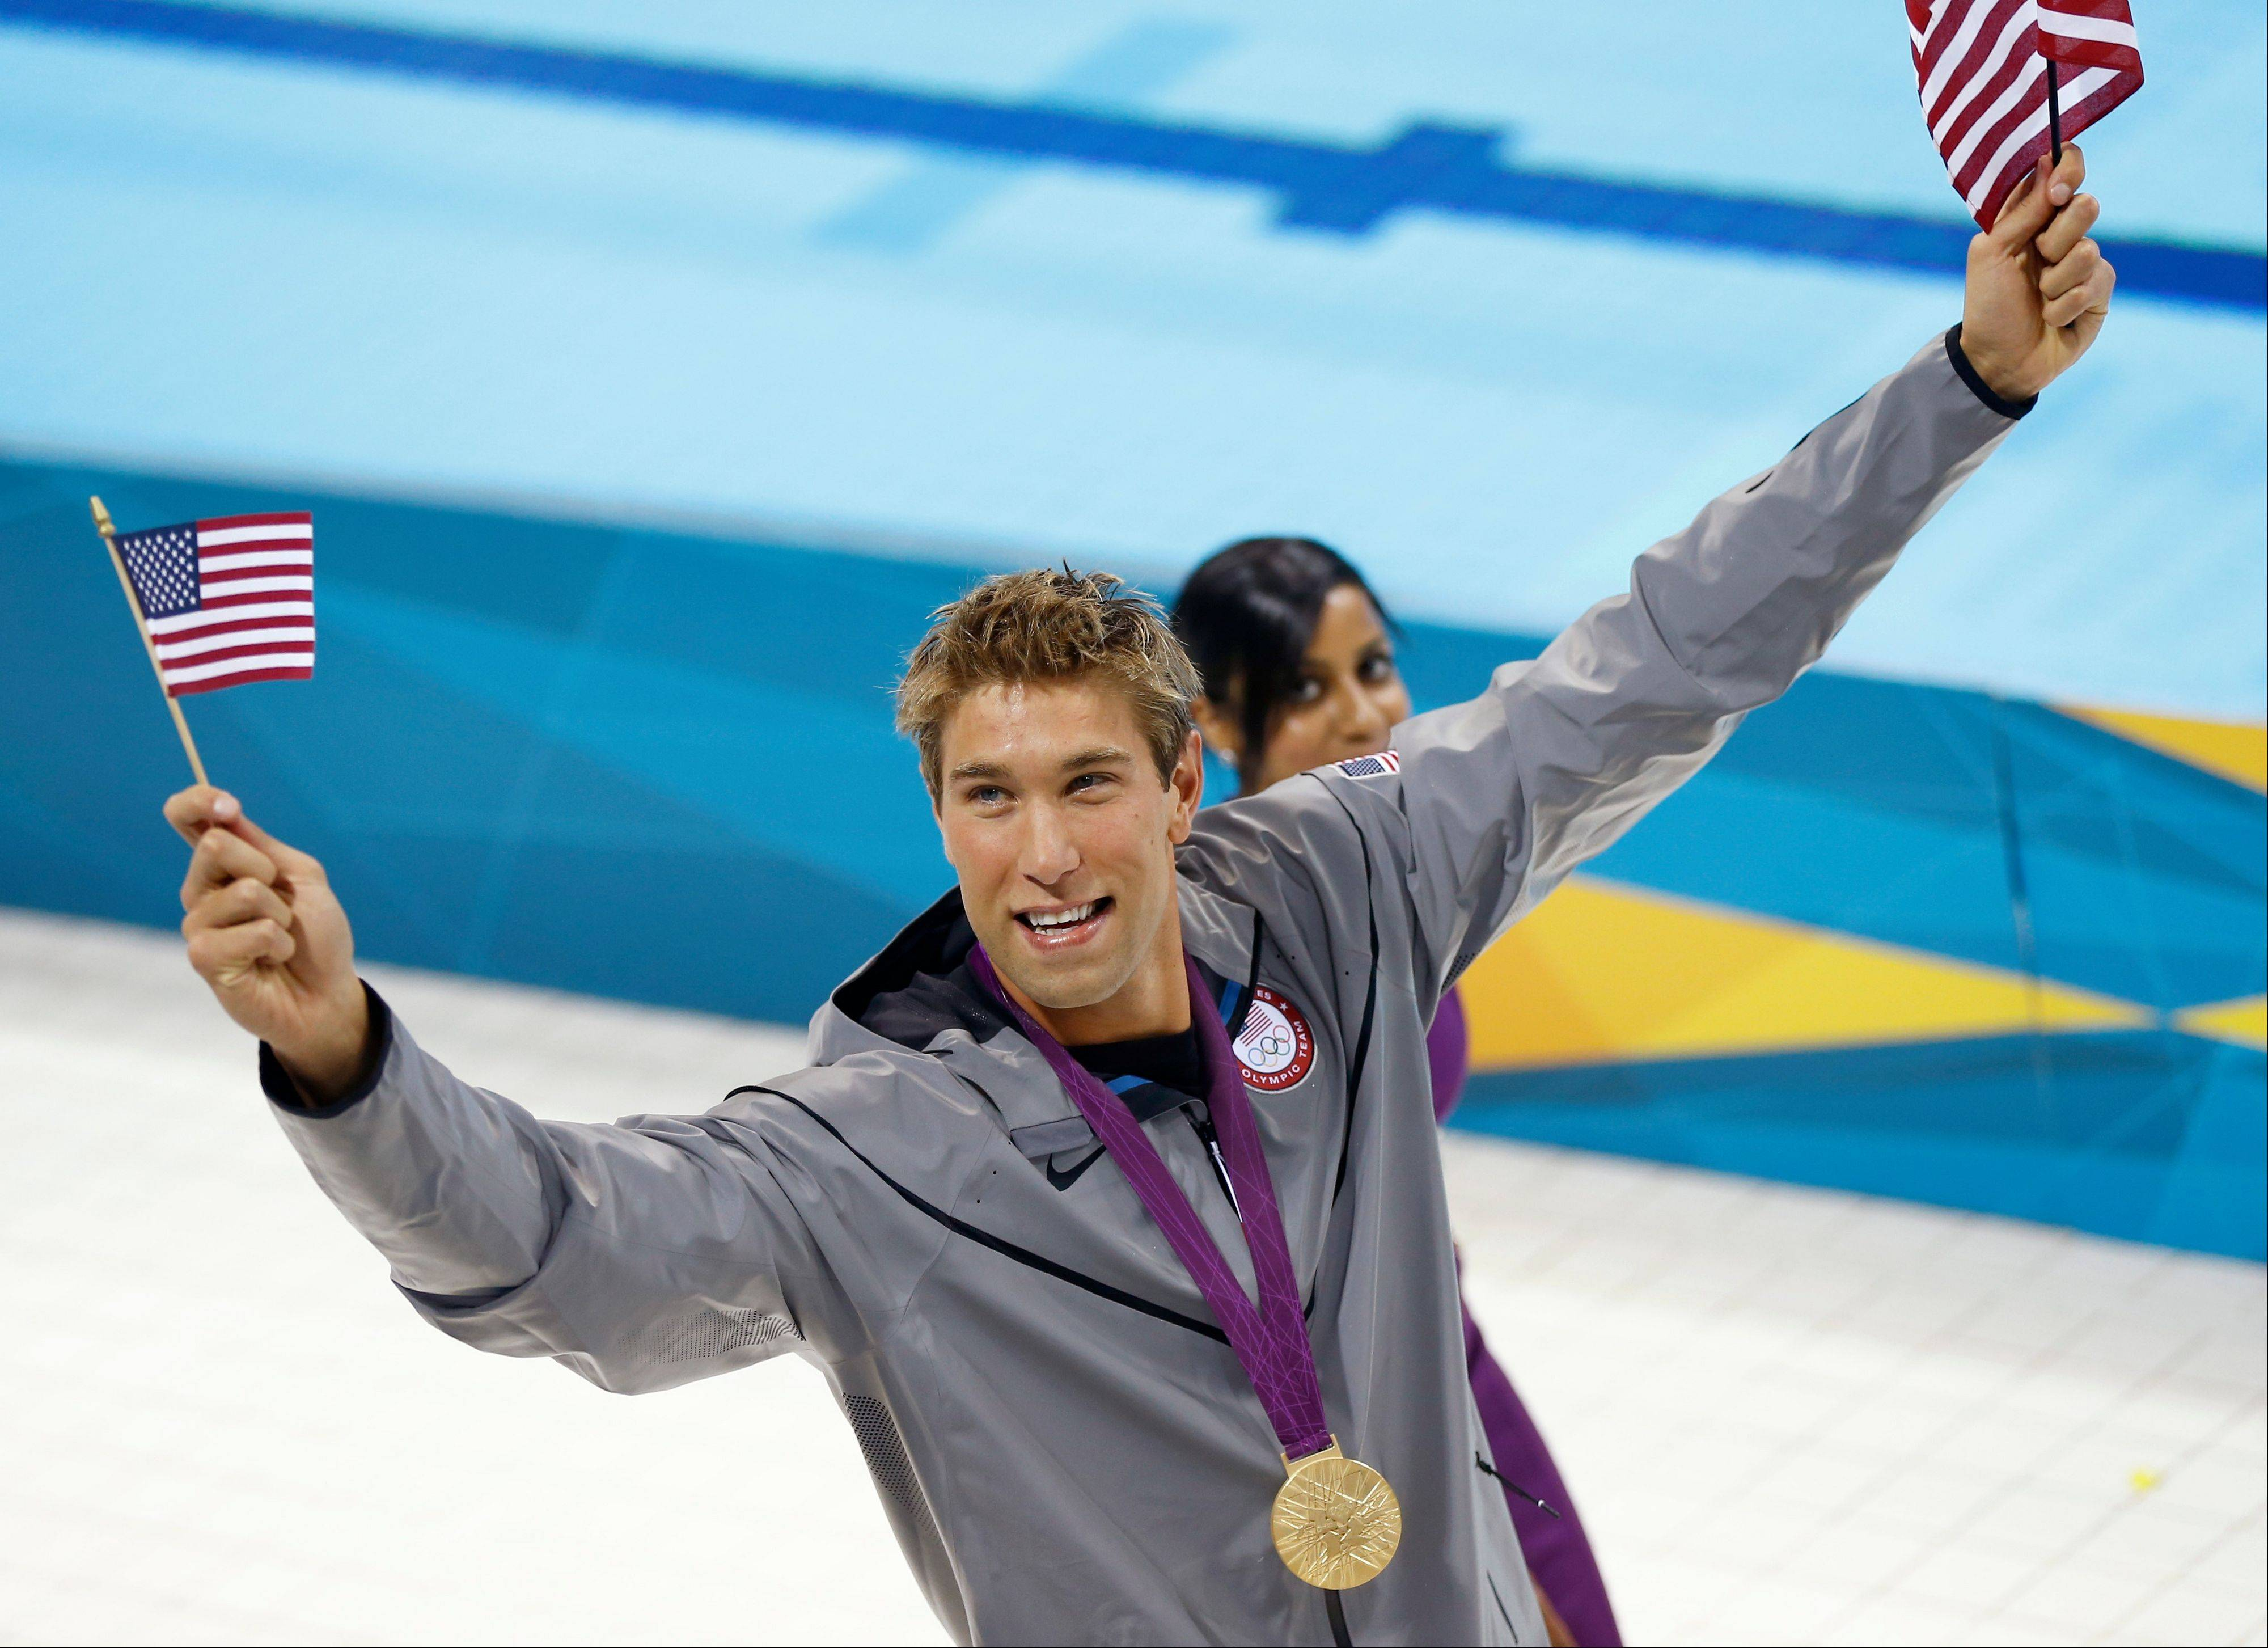 United States' gold medalist Matthew Grevers waves American flags as he walks at the Aquatics Centre in London after a medal ceremony for the men's 100-meter backstroke swimming final.